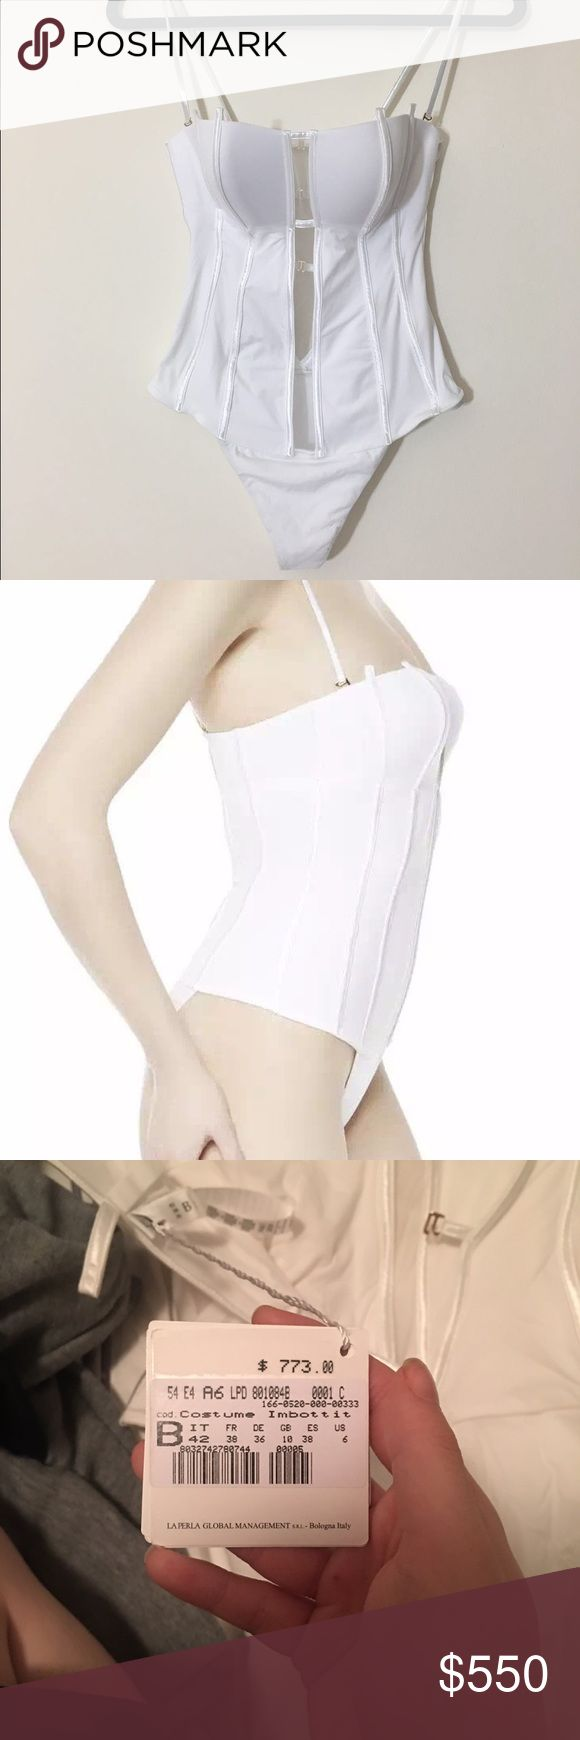 Very sexy brand new La Perla one piece swimsuit! A one piece swimsuit you are going to fall in love with. Sexy interplay between white and nude tones, made in Portugal. Some part uses Lycra,an extremely stretchy fabric that moulds to the lines of the body. 160/84A, fits well for a size S La Perla Swim One Pieces